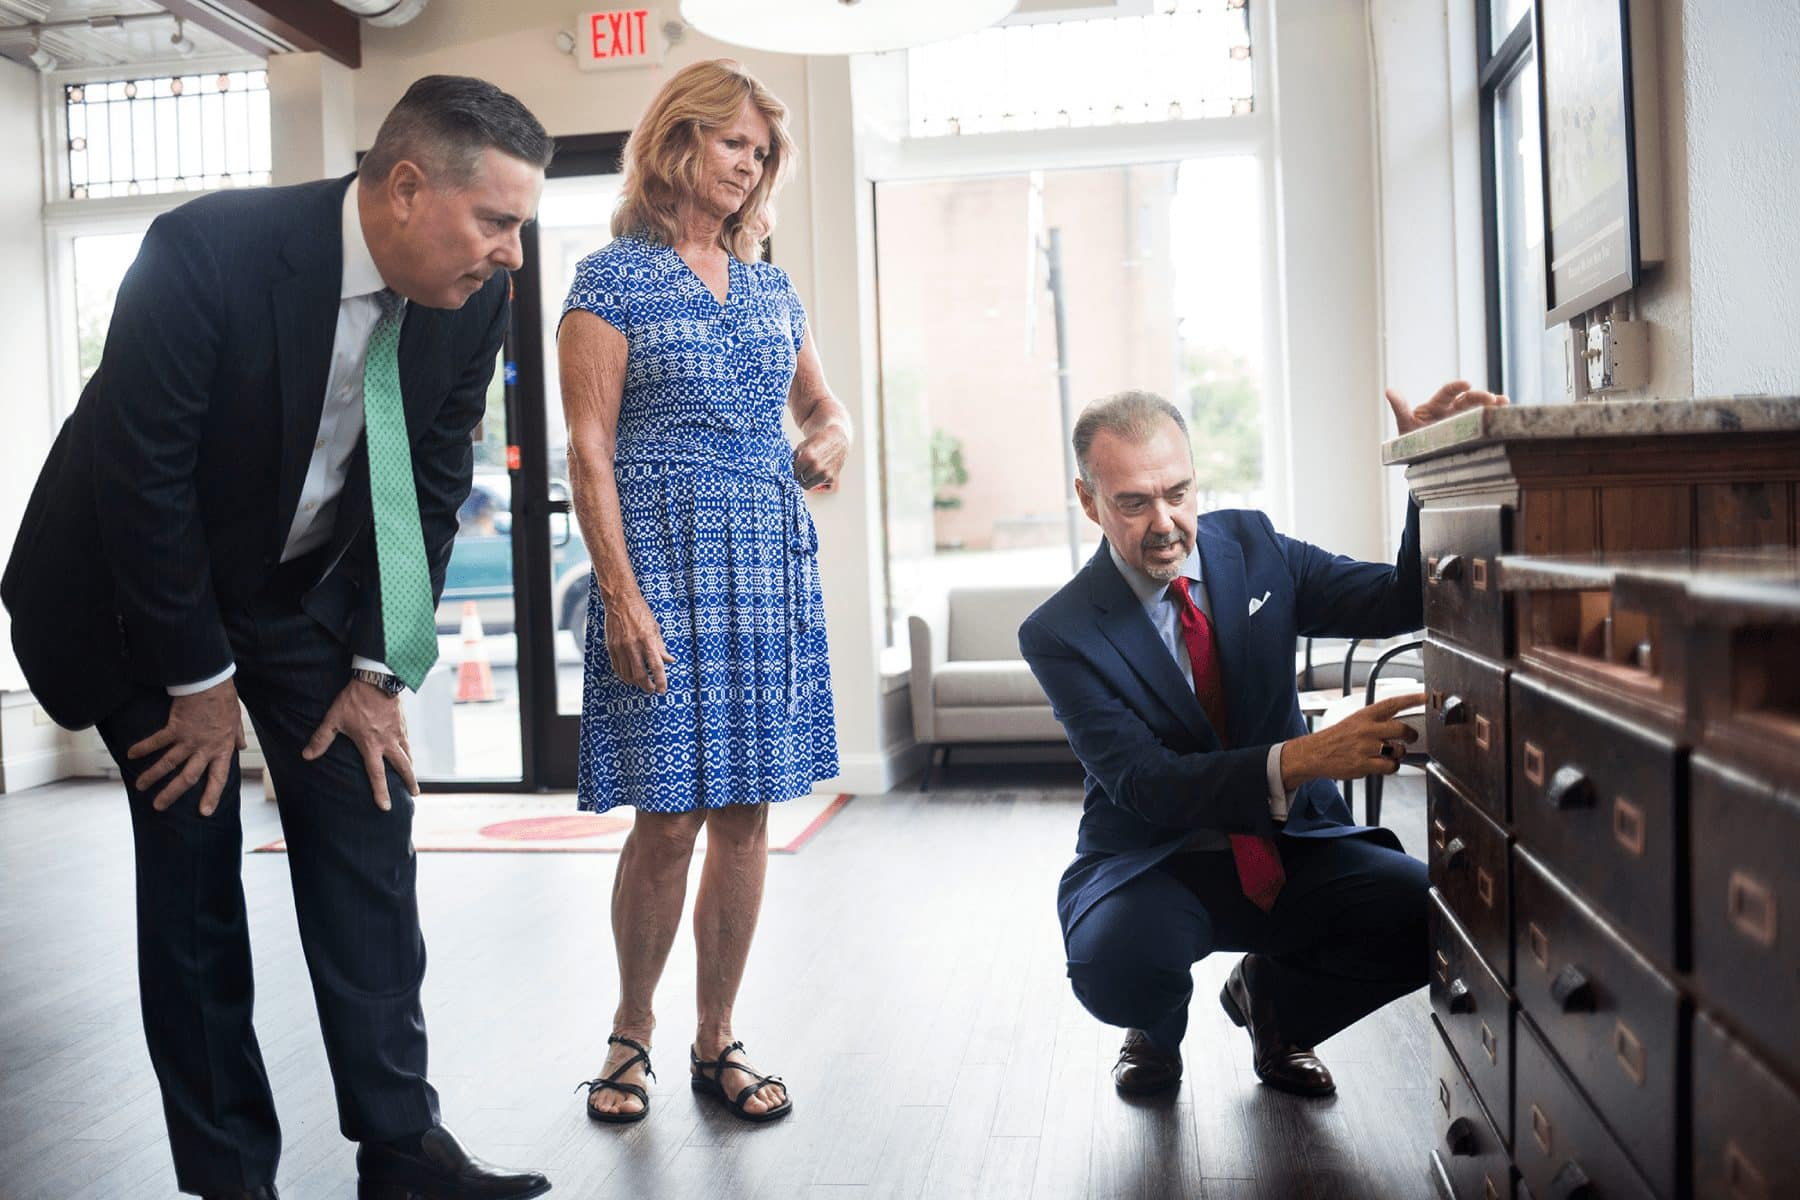 """Annie Haines, granddaughter of Mahlon Haines, York's """"shoe wizard,"""" gets a tour of the new York Traditions Bank branch, where much of the historical integrity of the building was preserved while celebrating its future. (Photo by Paul Chaplin for Our York Media)"""